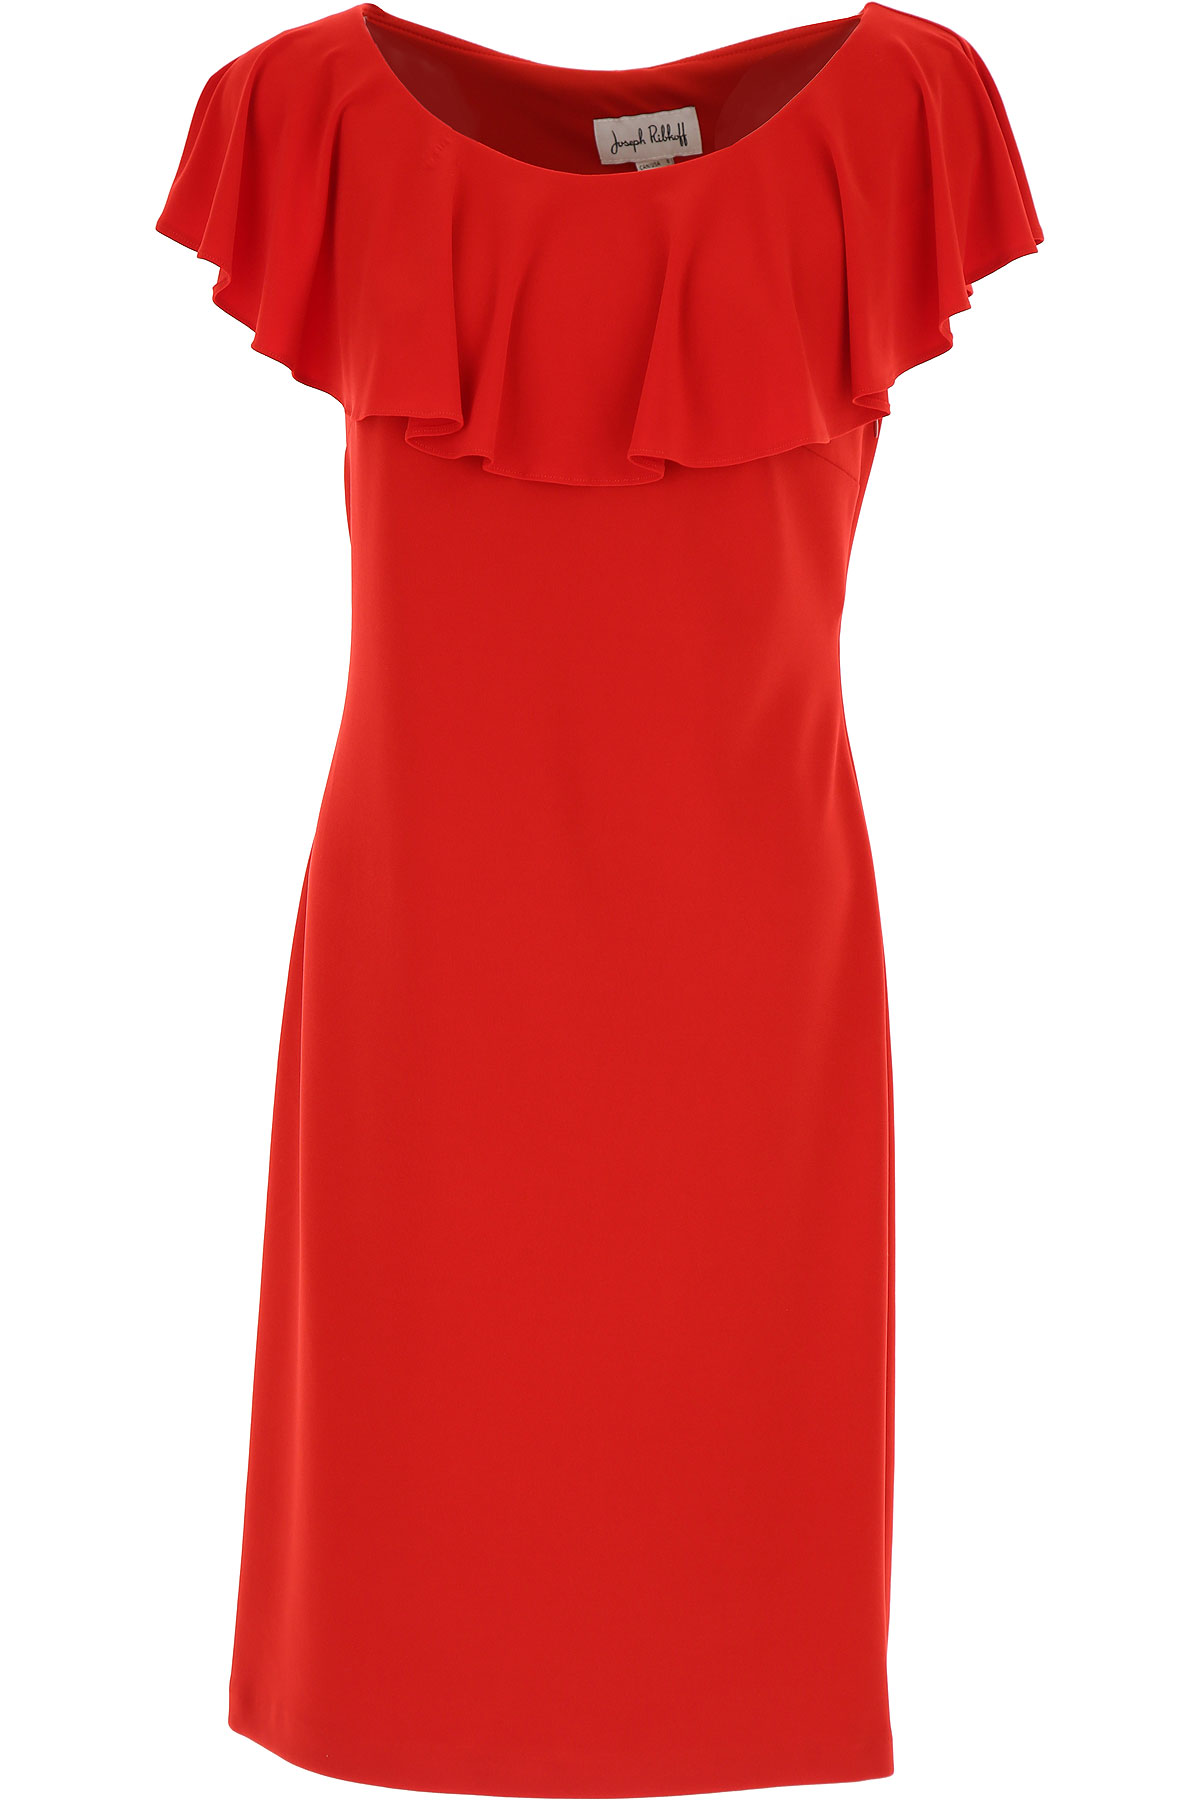 Joseph Ribkoff Dress for Women, Evening Cocktail Party, Red, polyester, 2017, 10 12 6 8 USA-437233